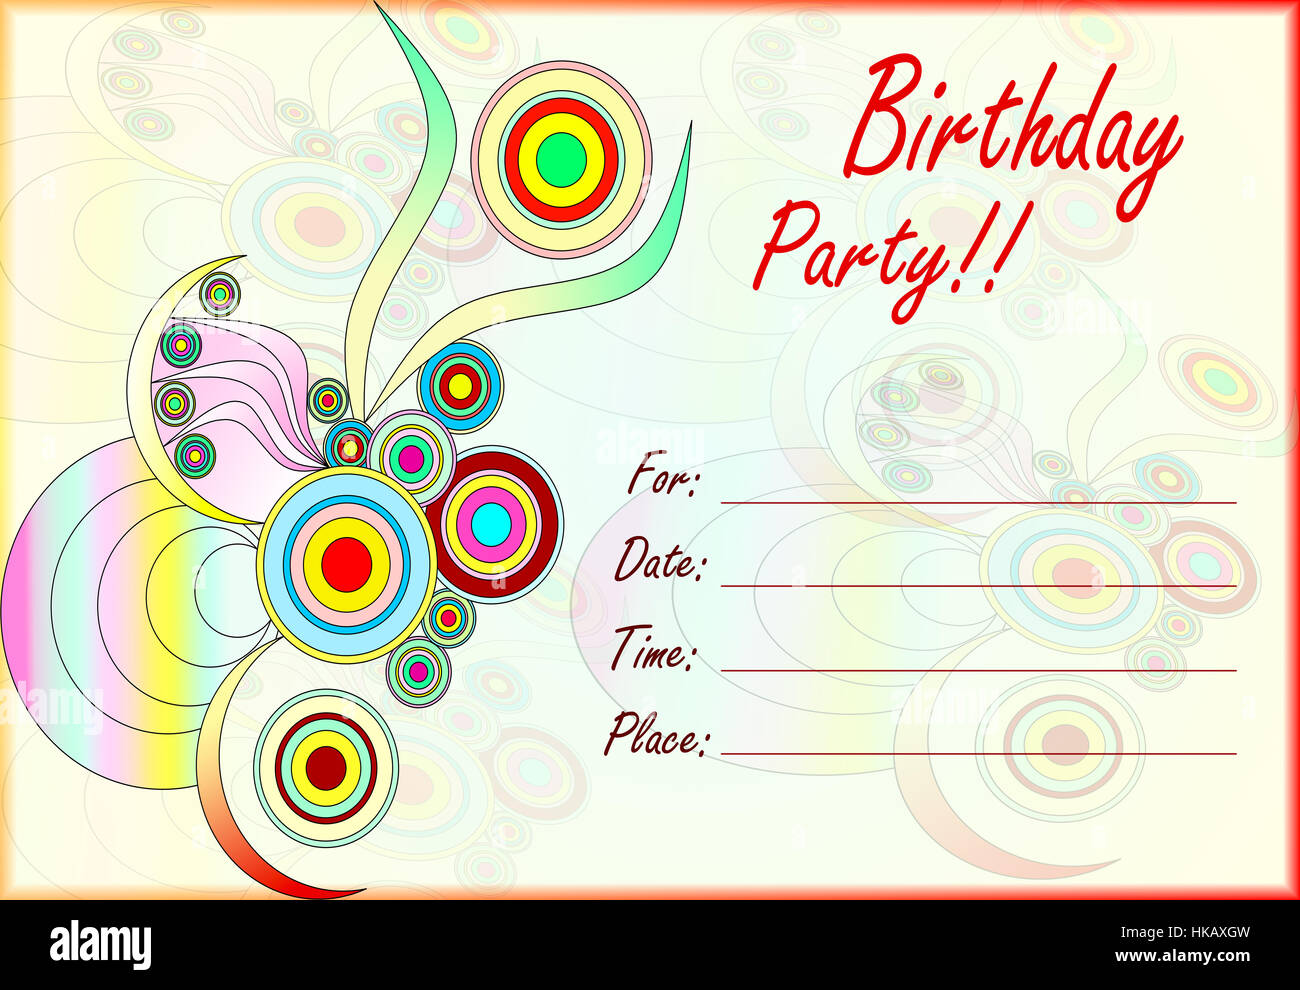 Colorful Birthday Party Invitation For Kids With Empty Lines Text